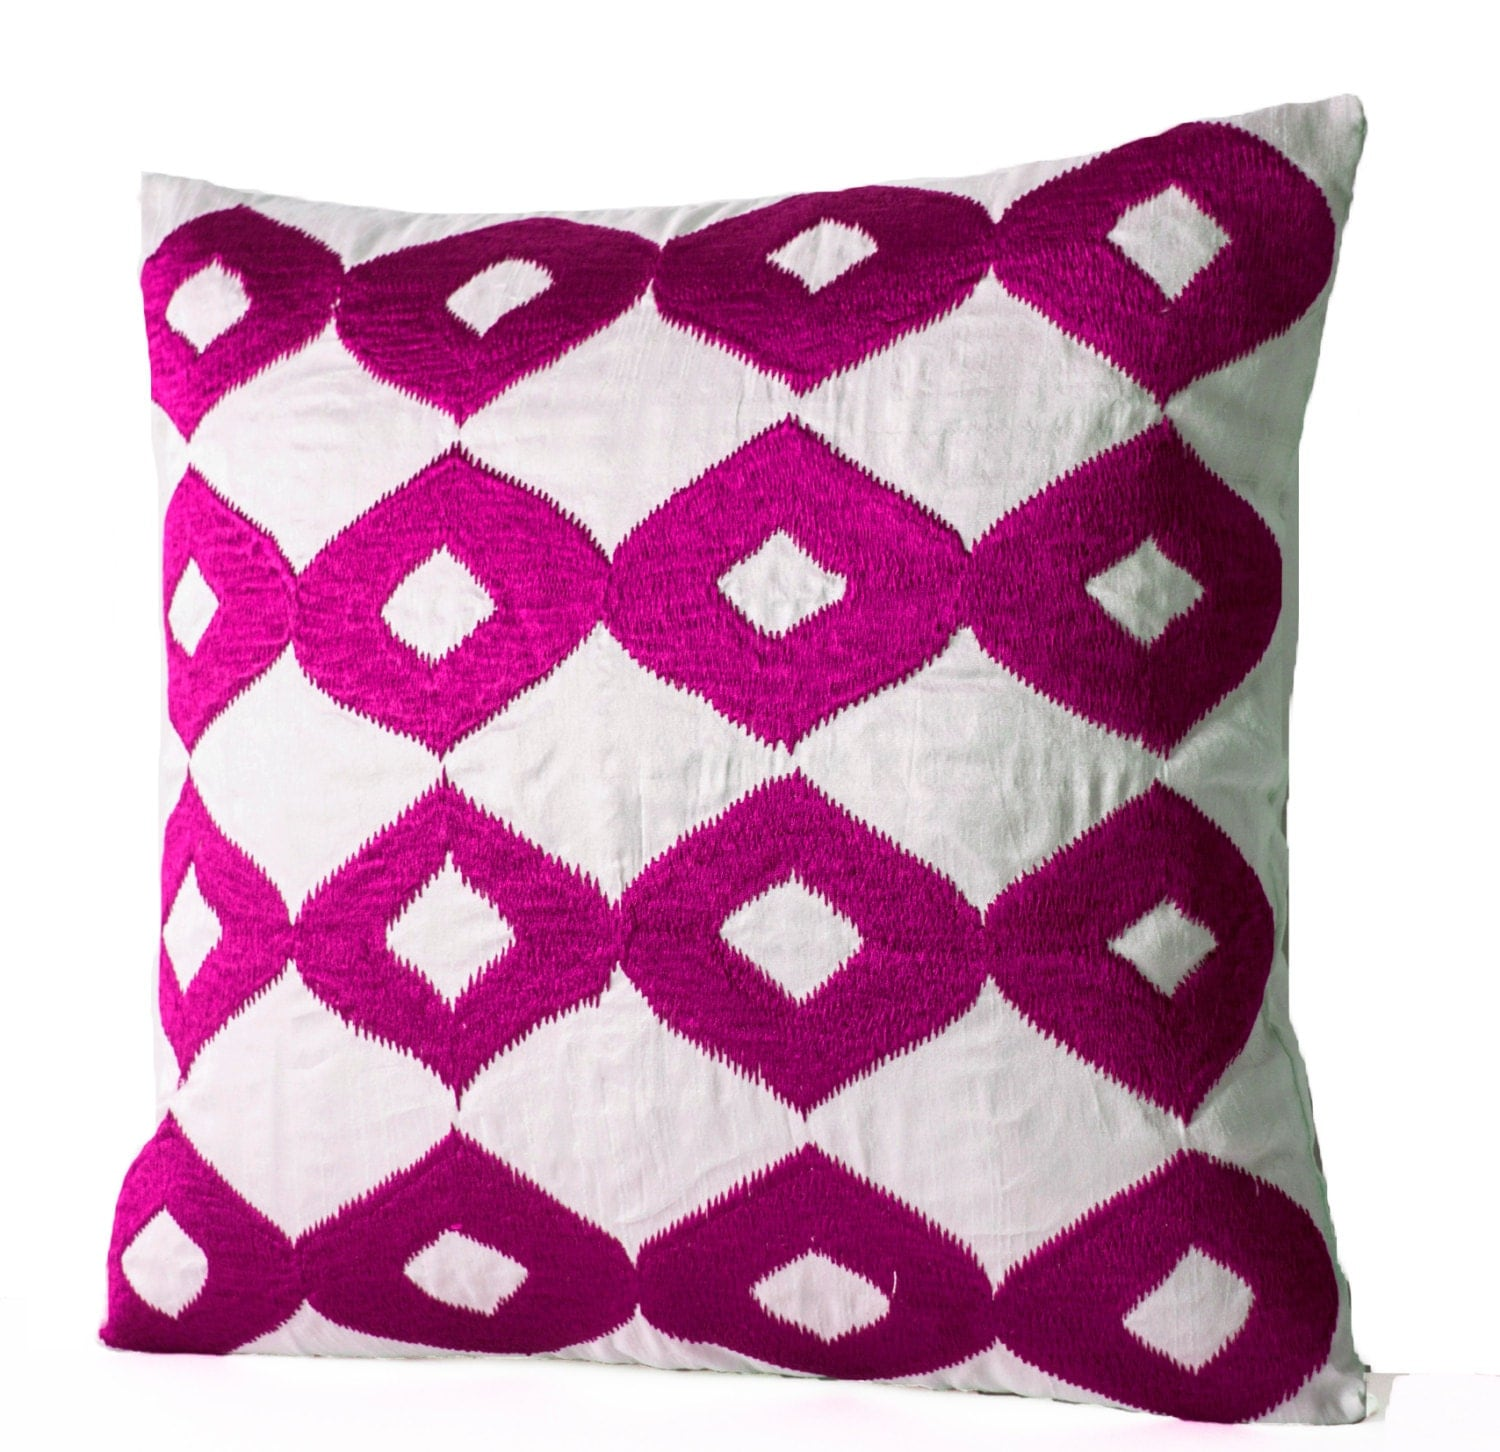 Decorative Pillow Pink : Decorative Throw Pillow Hot Pink Pillows White Silk Fuchsia